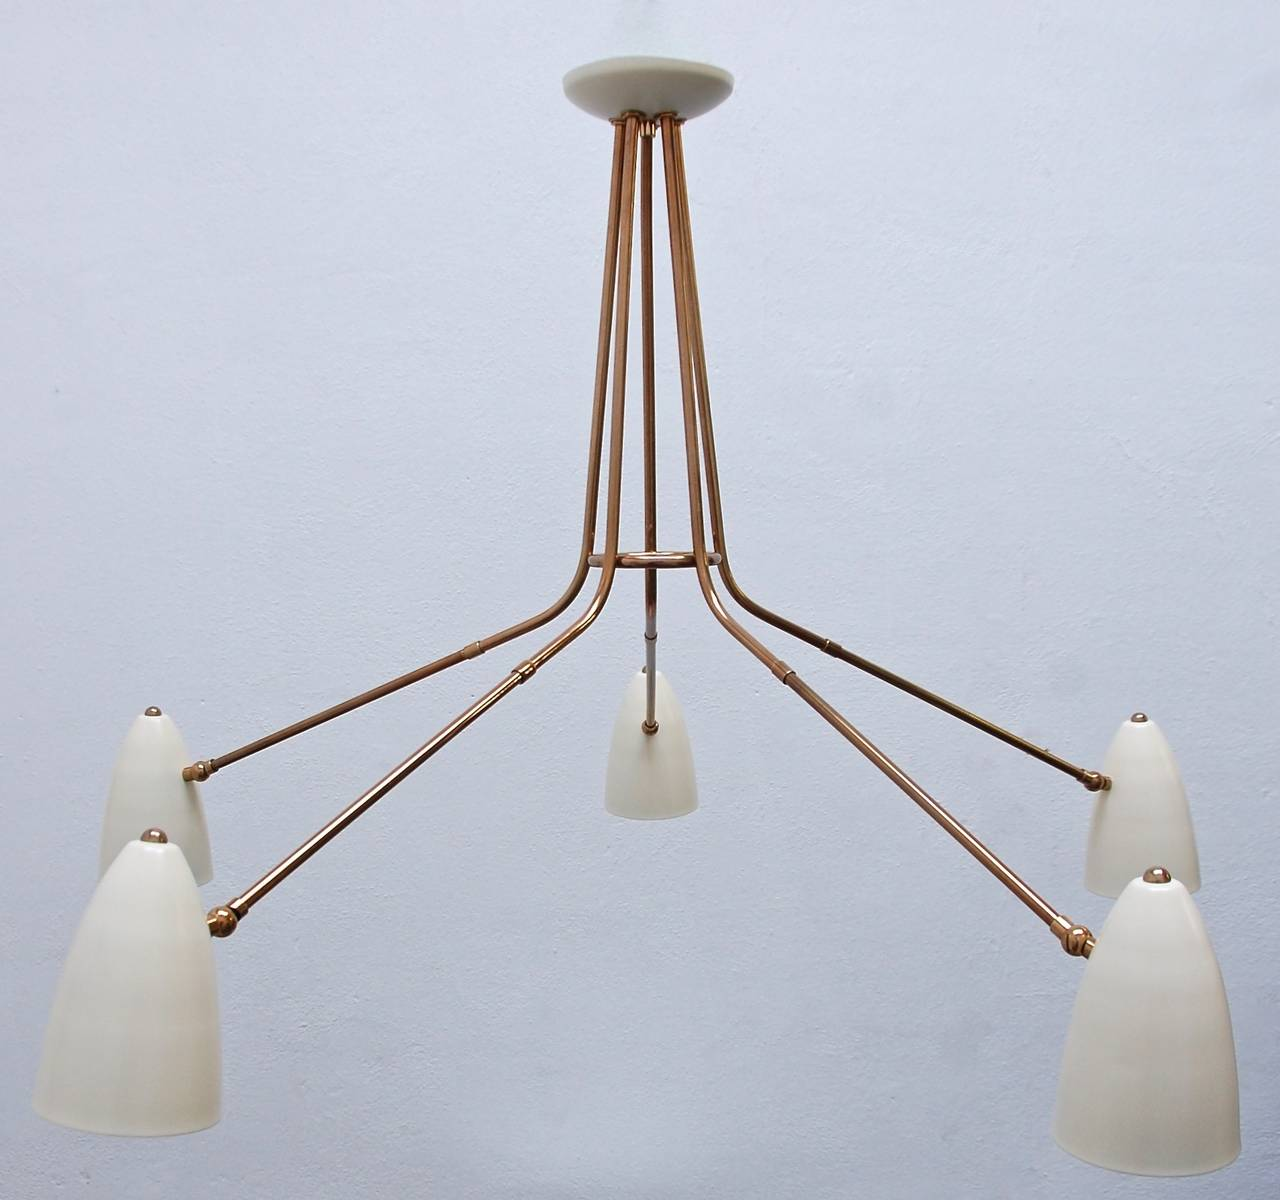 Five Arm Flush Mount Chandelier from Italy at 1stdibs